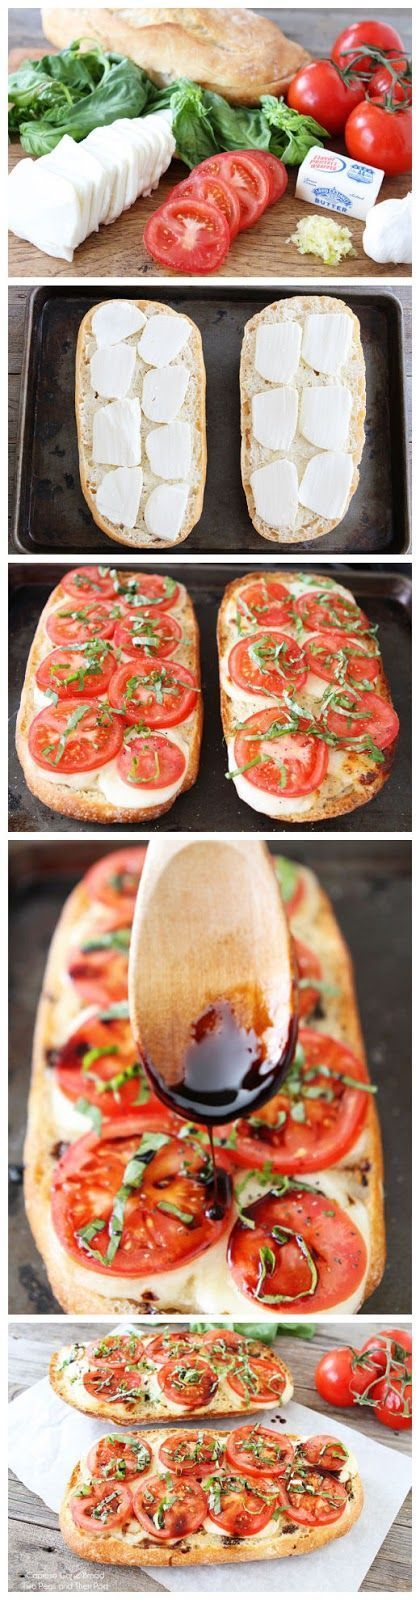 Caprese Garlic Bread, tried it, LOVED IT!